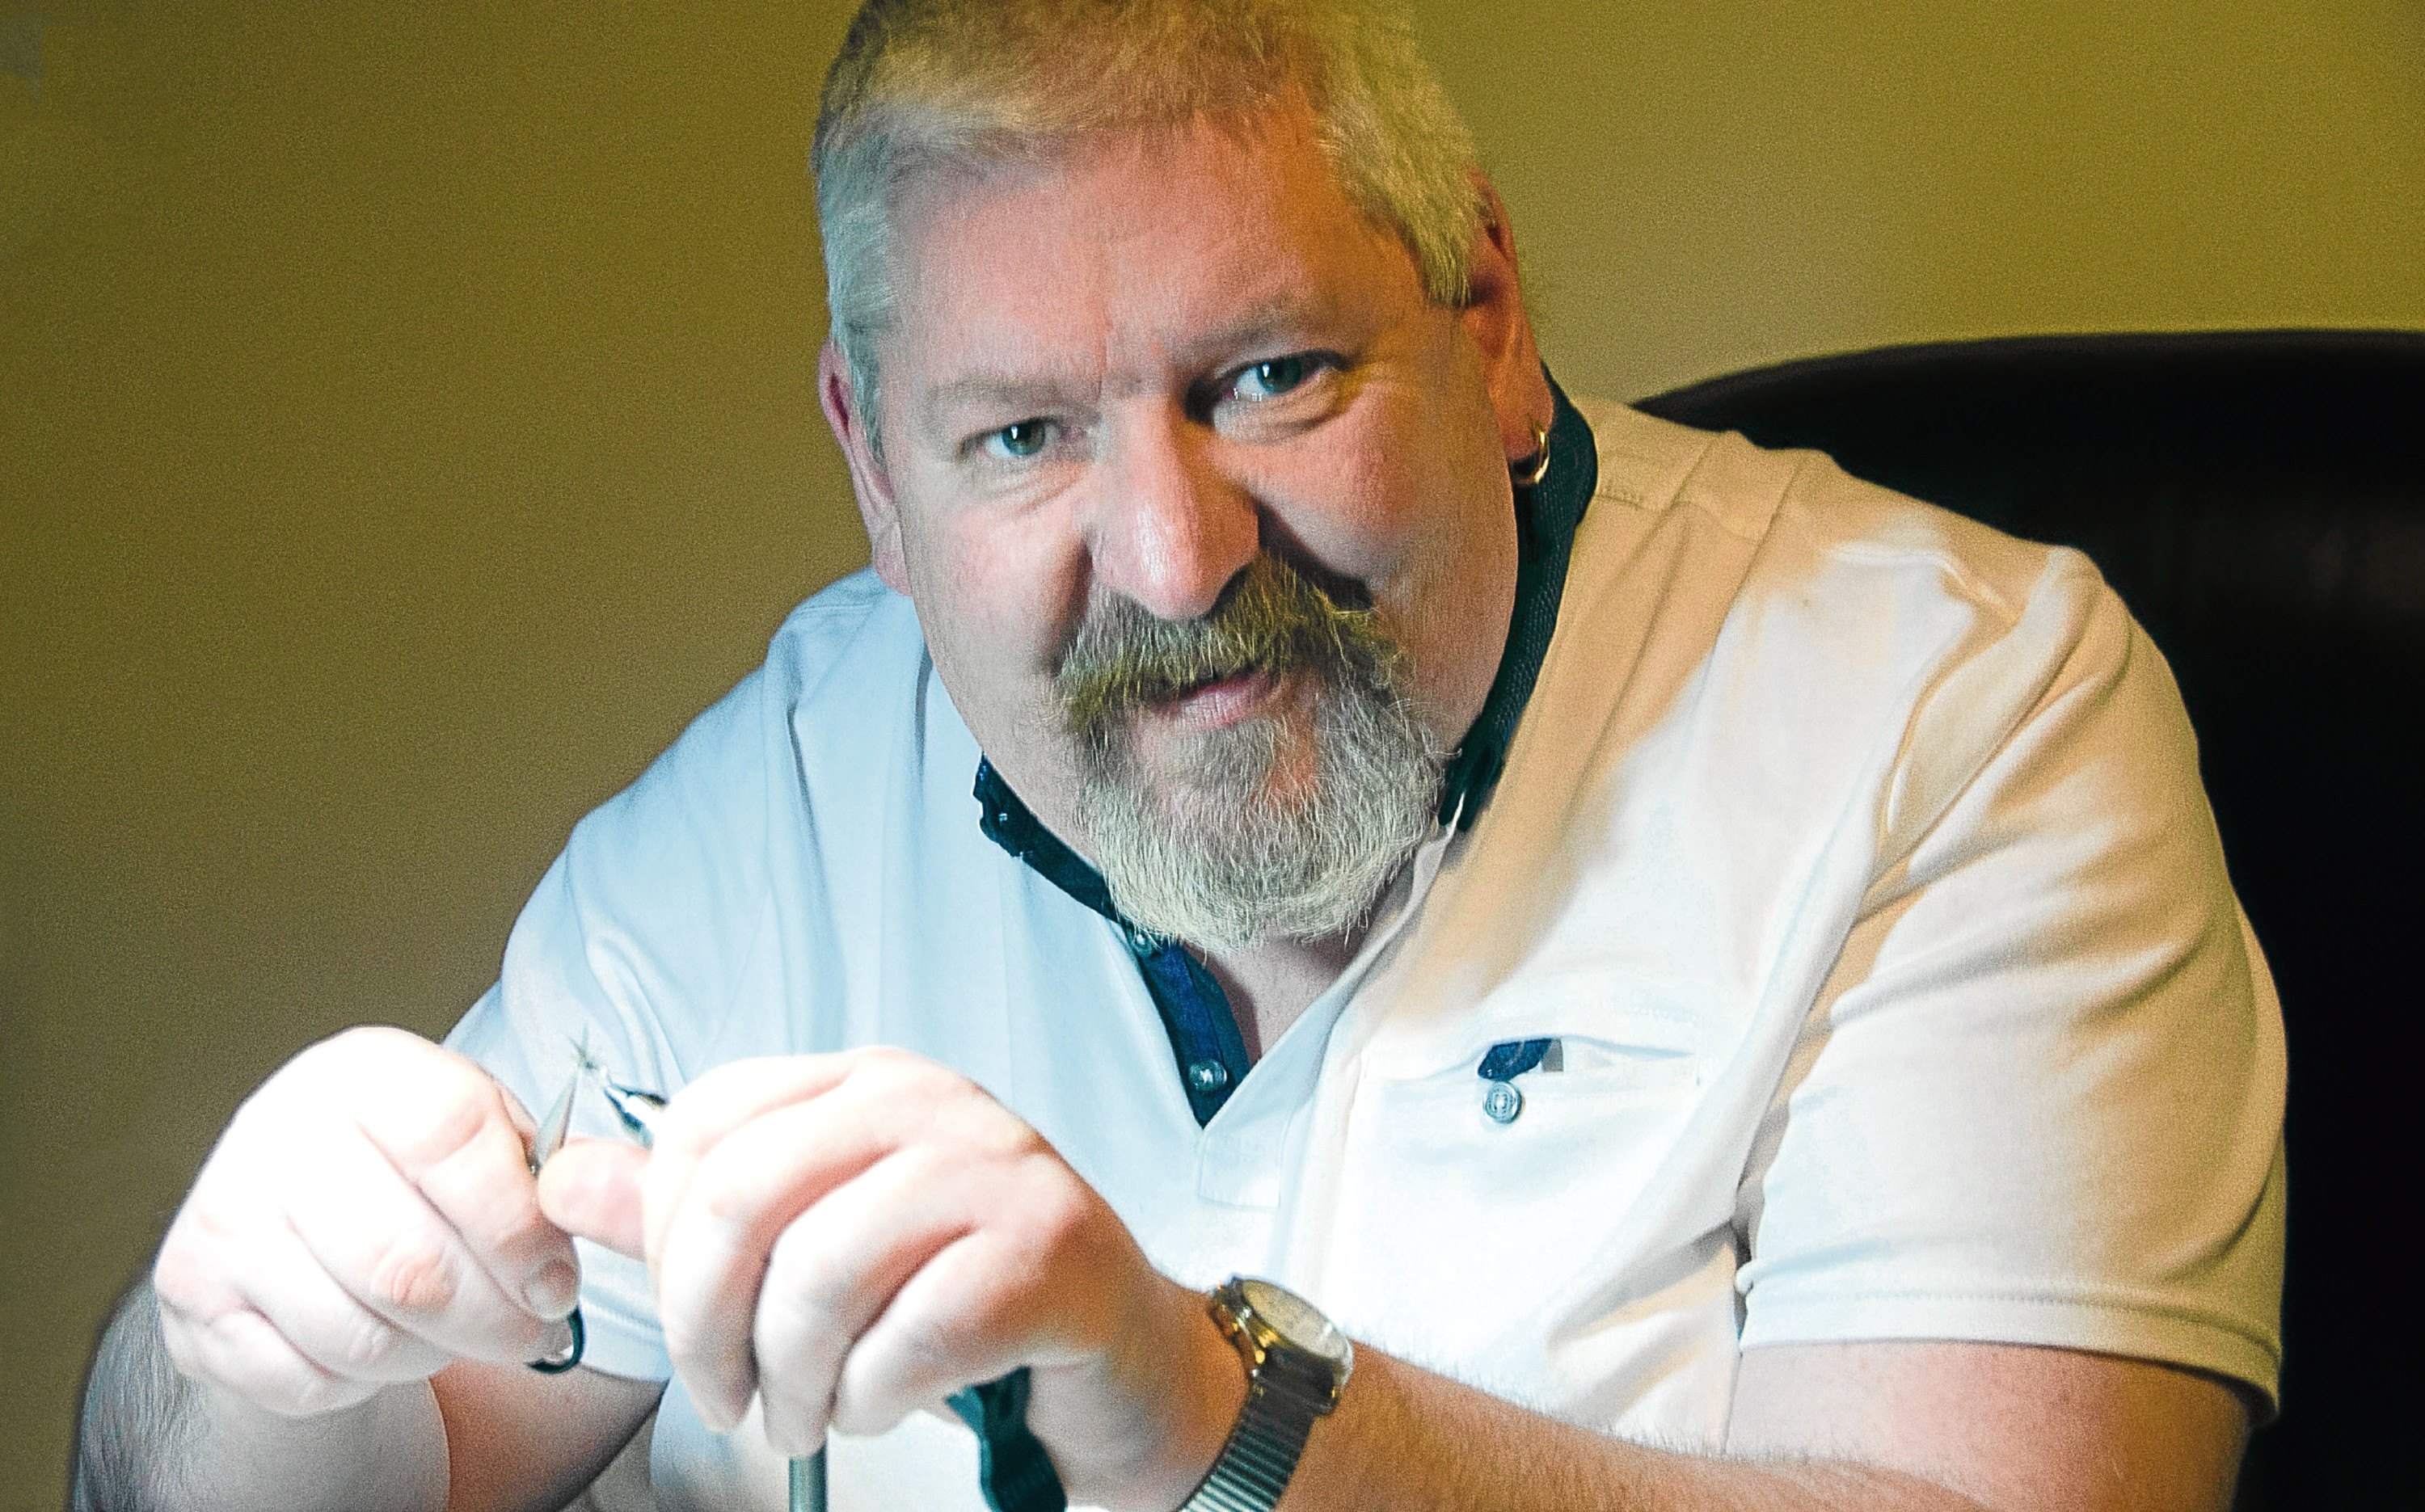 Alan Bithell is using his experiences to help other veterans